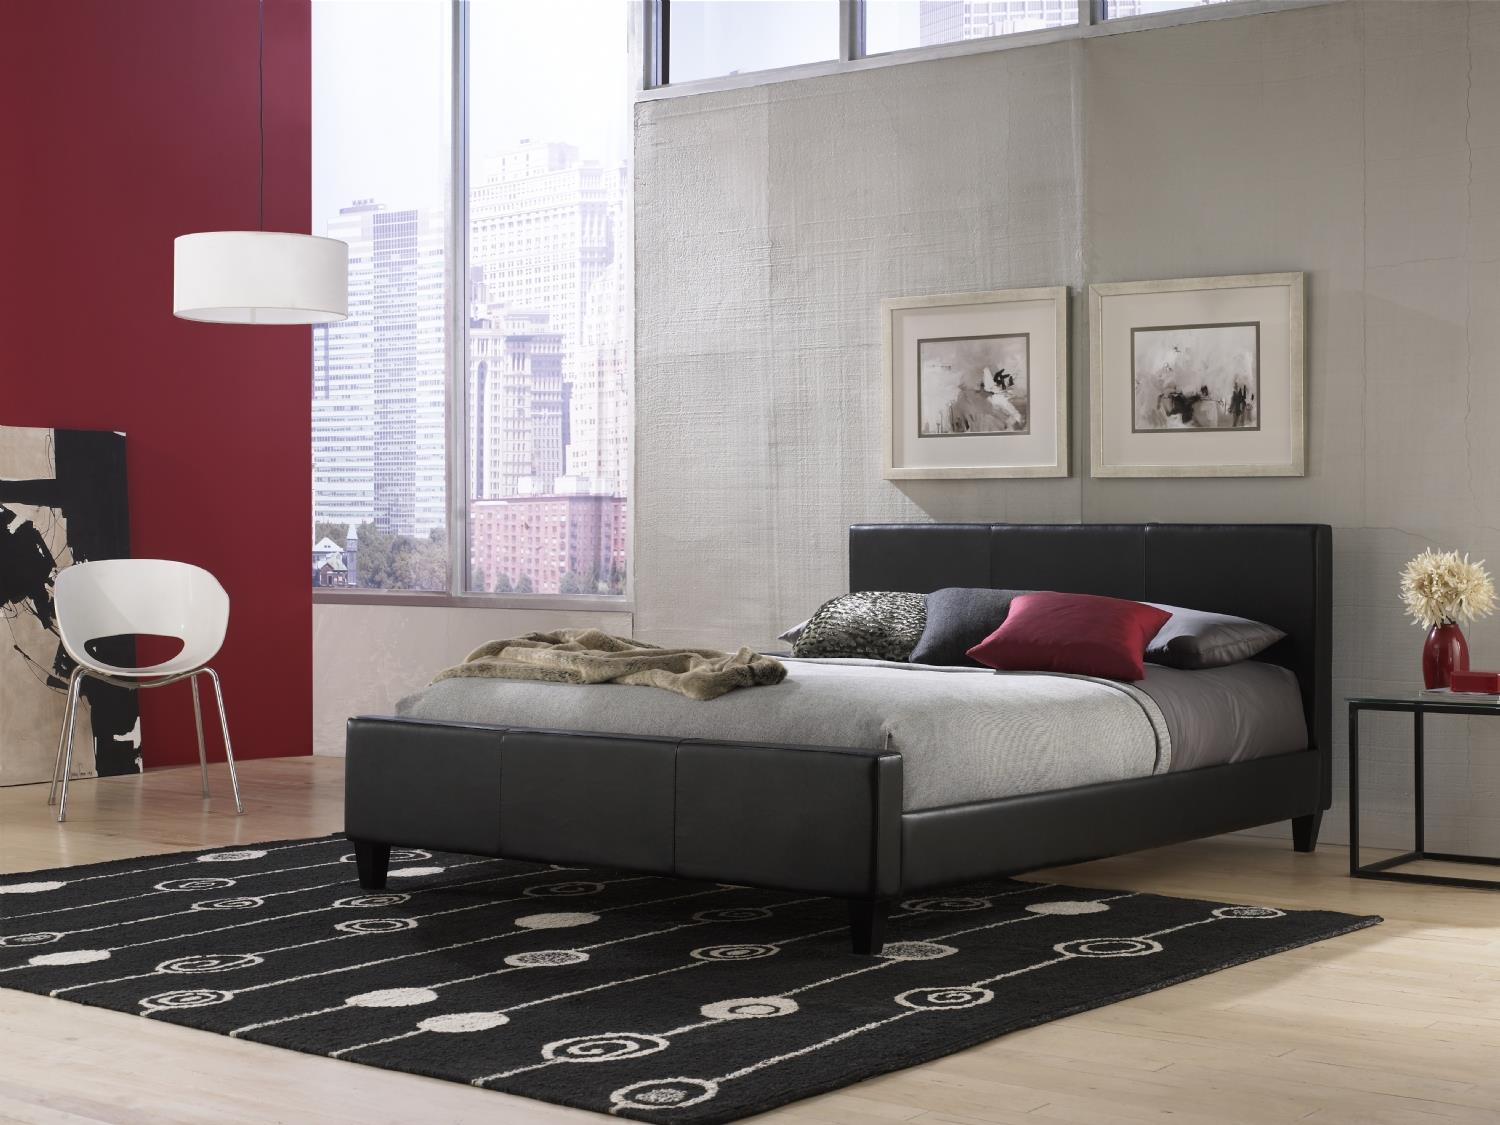 Fashion Bed Group Euro Cal King Bed - Item Number: D87227143